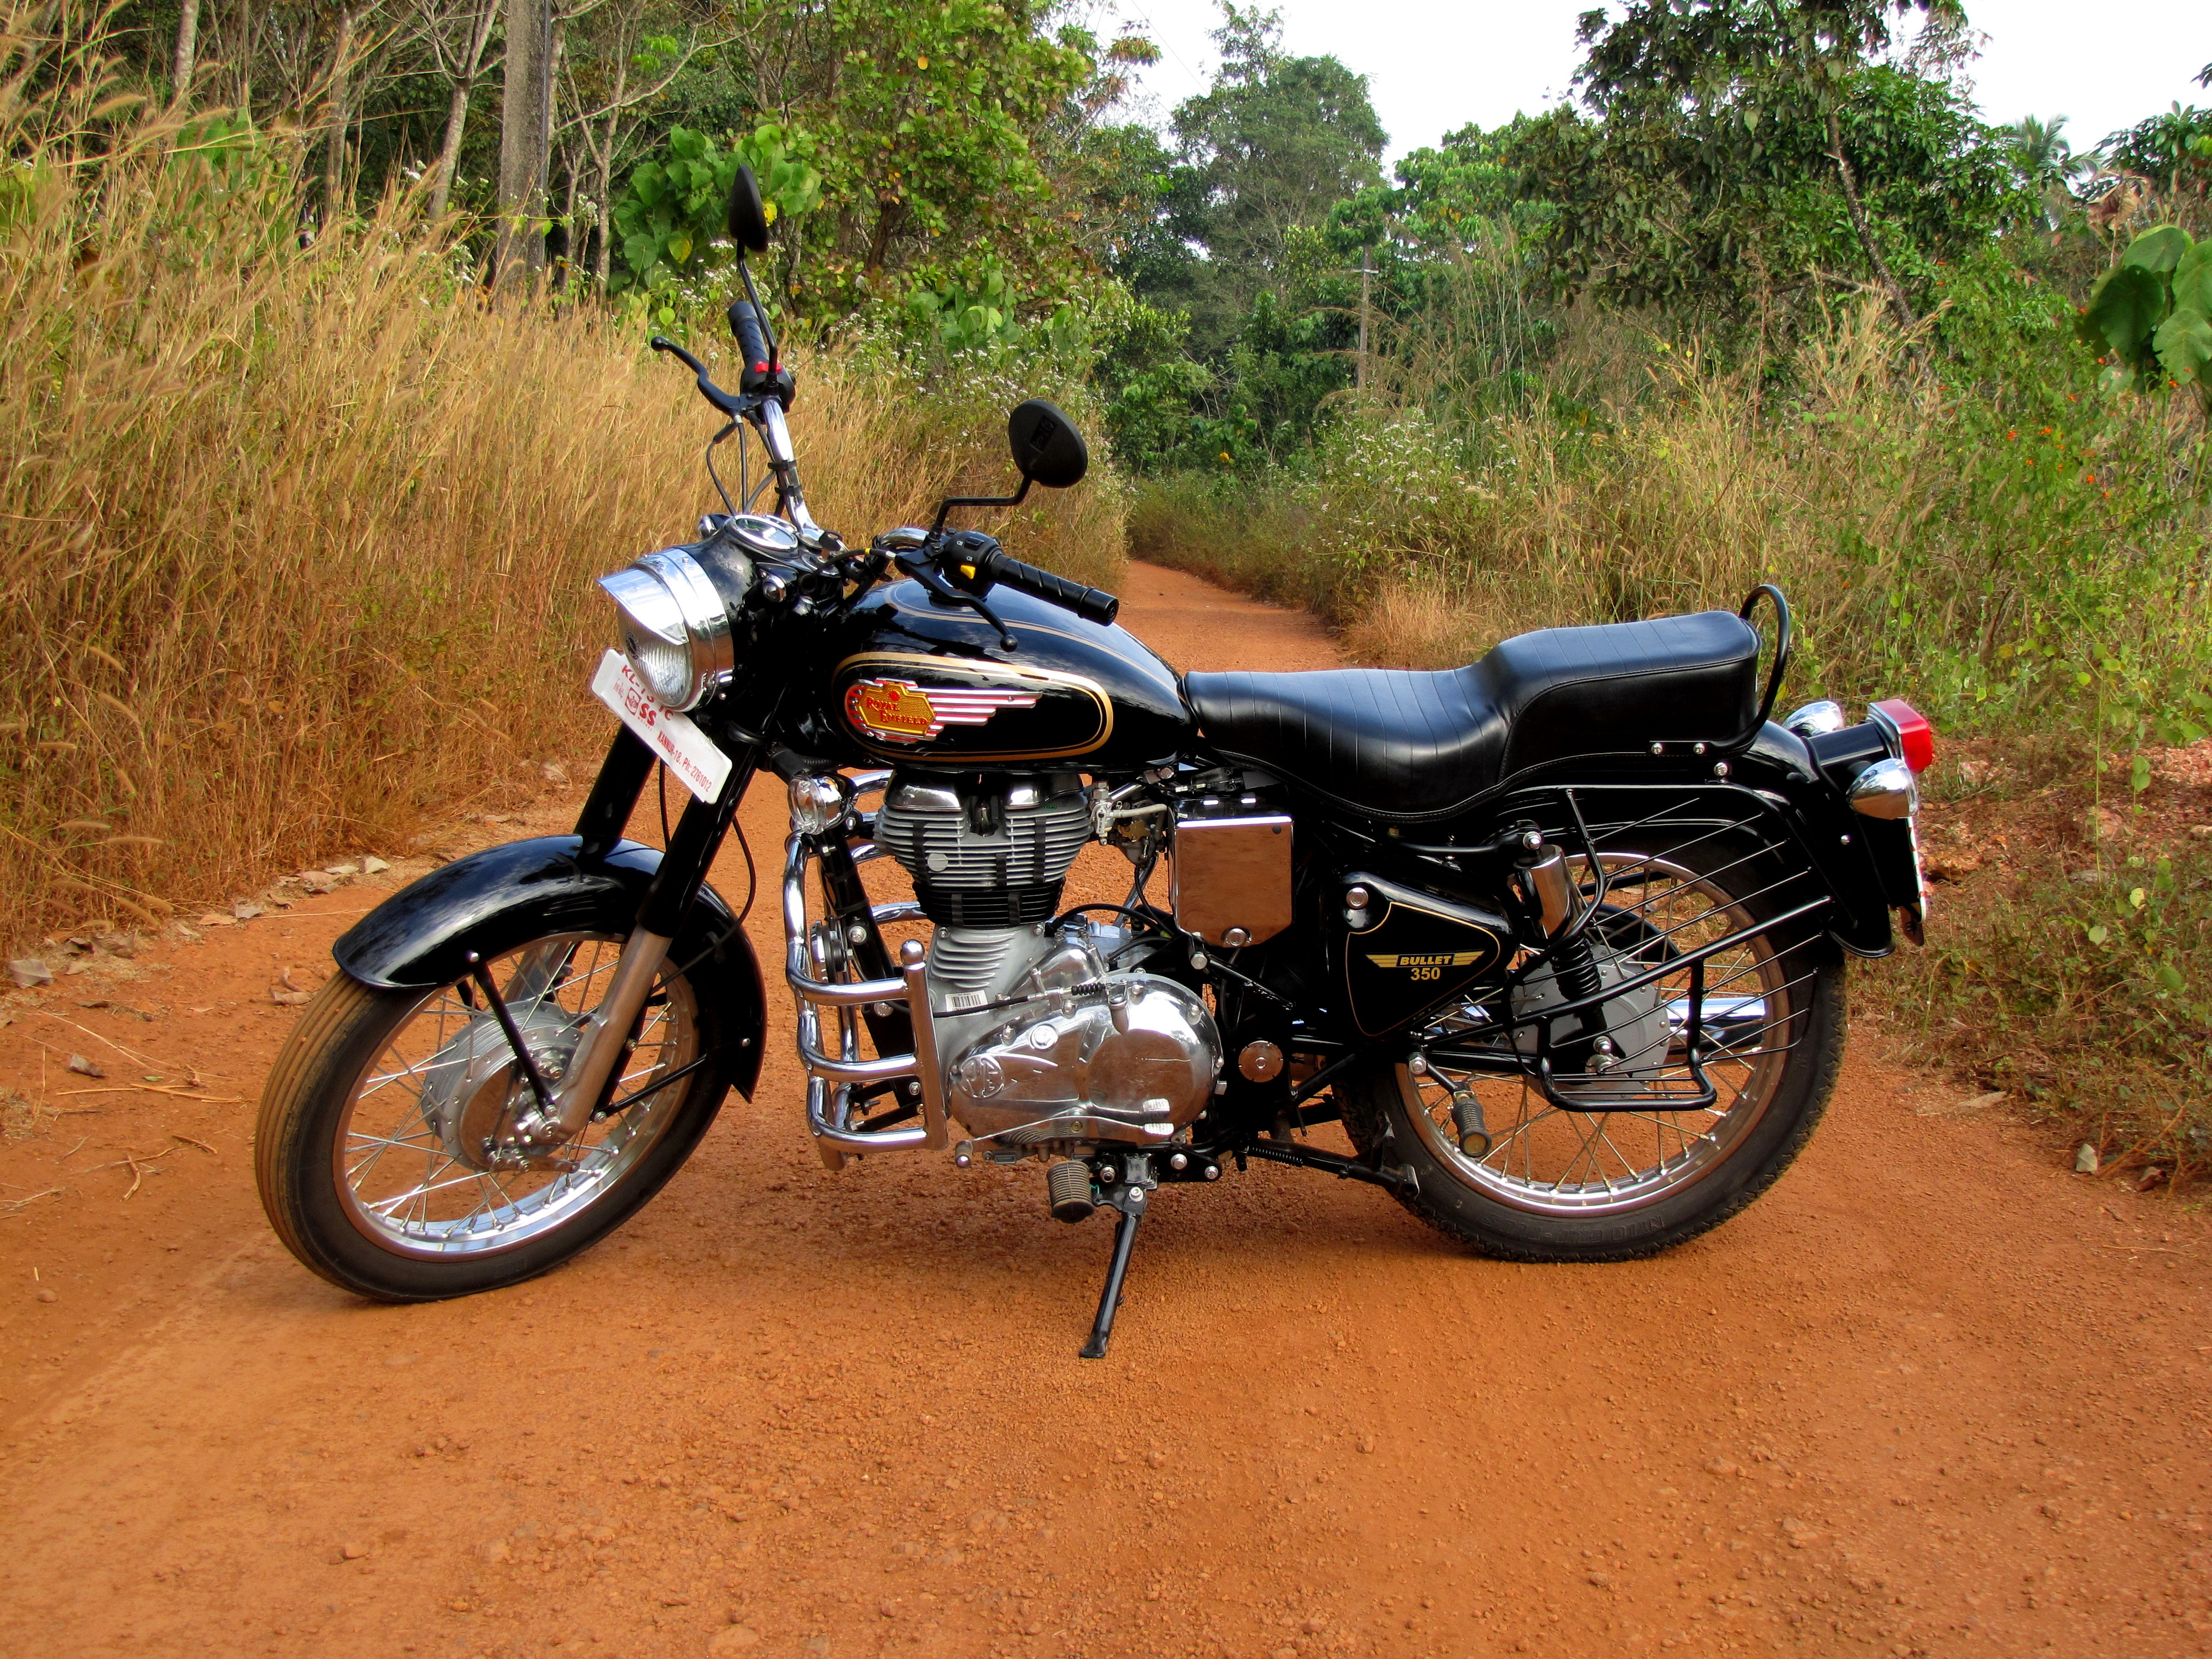 Royal Enfield Bullet 350 Classic 2009 images #123524